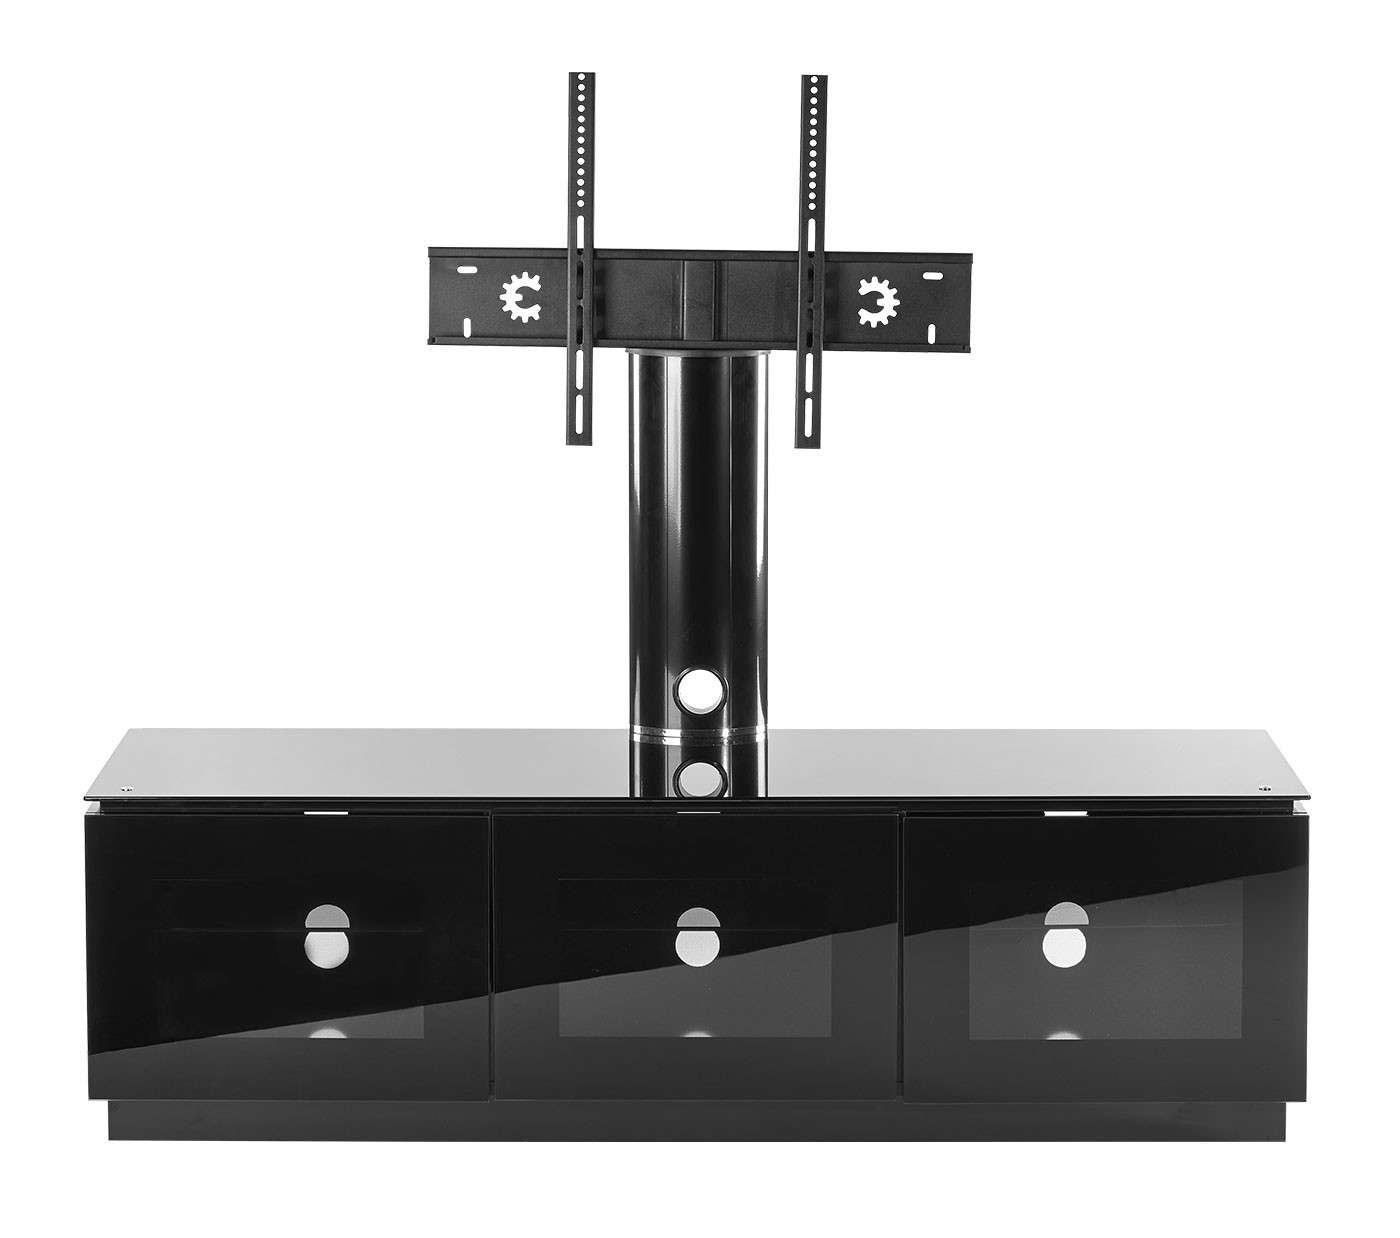 Black Tv Cabinet With Mount For Up To 65 Inch Tv | Mmt D1500 Xarm In Black Gloss Tv Stands (View 6 of 15)